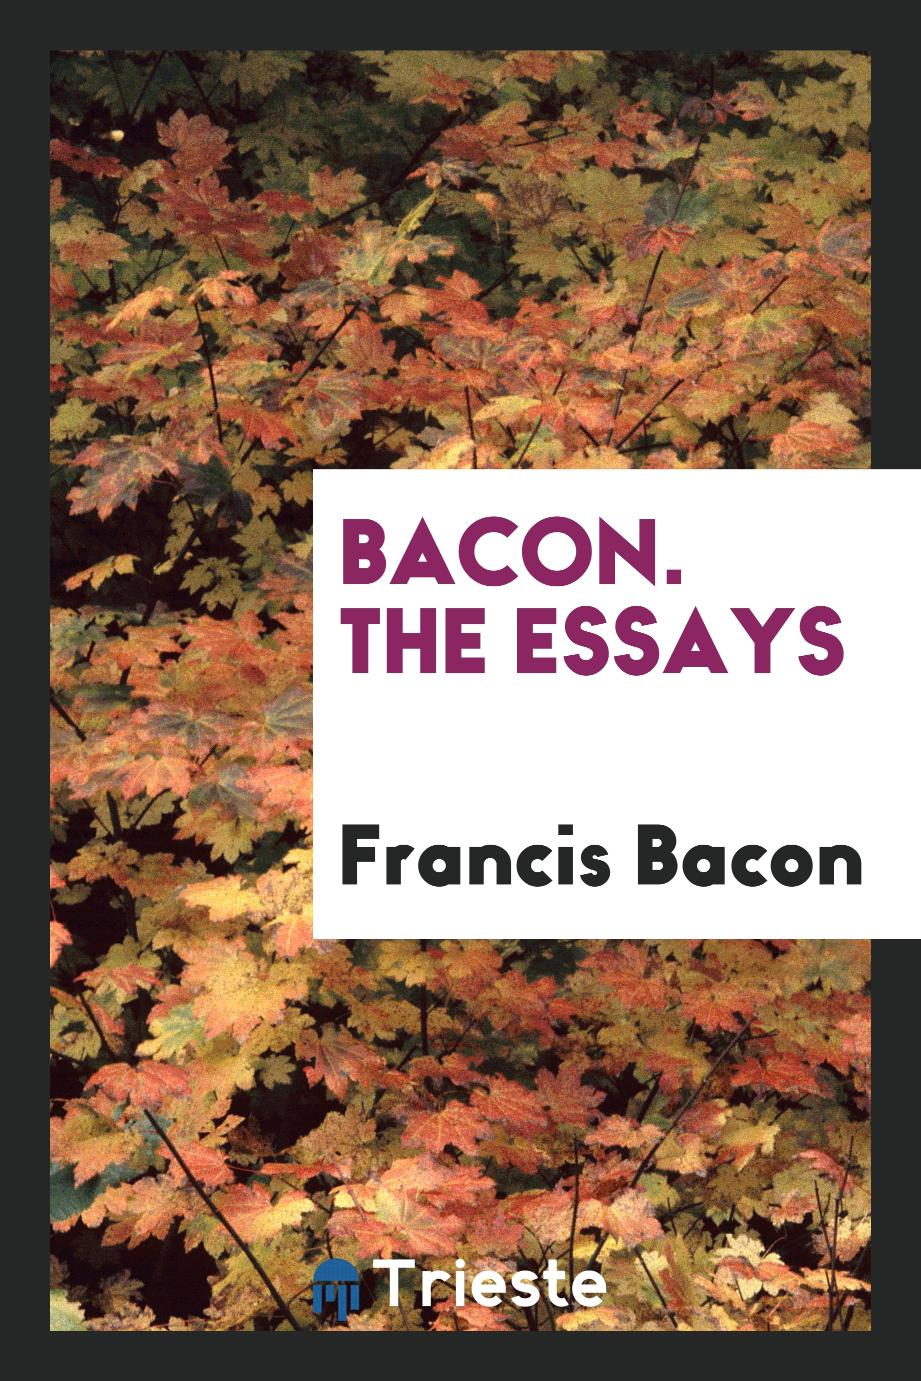 Bacon. The Essays